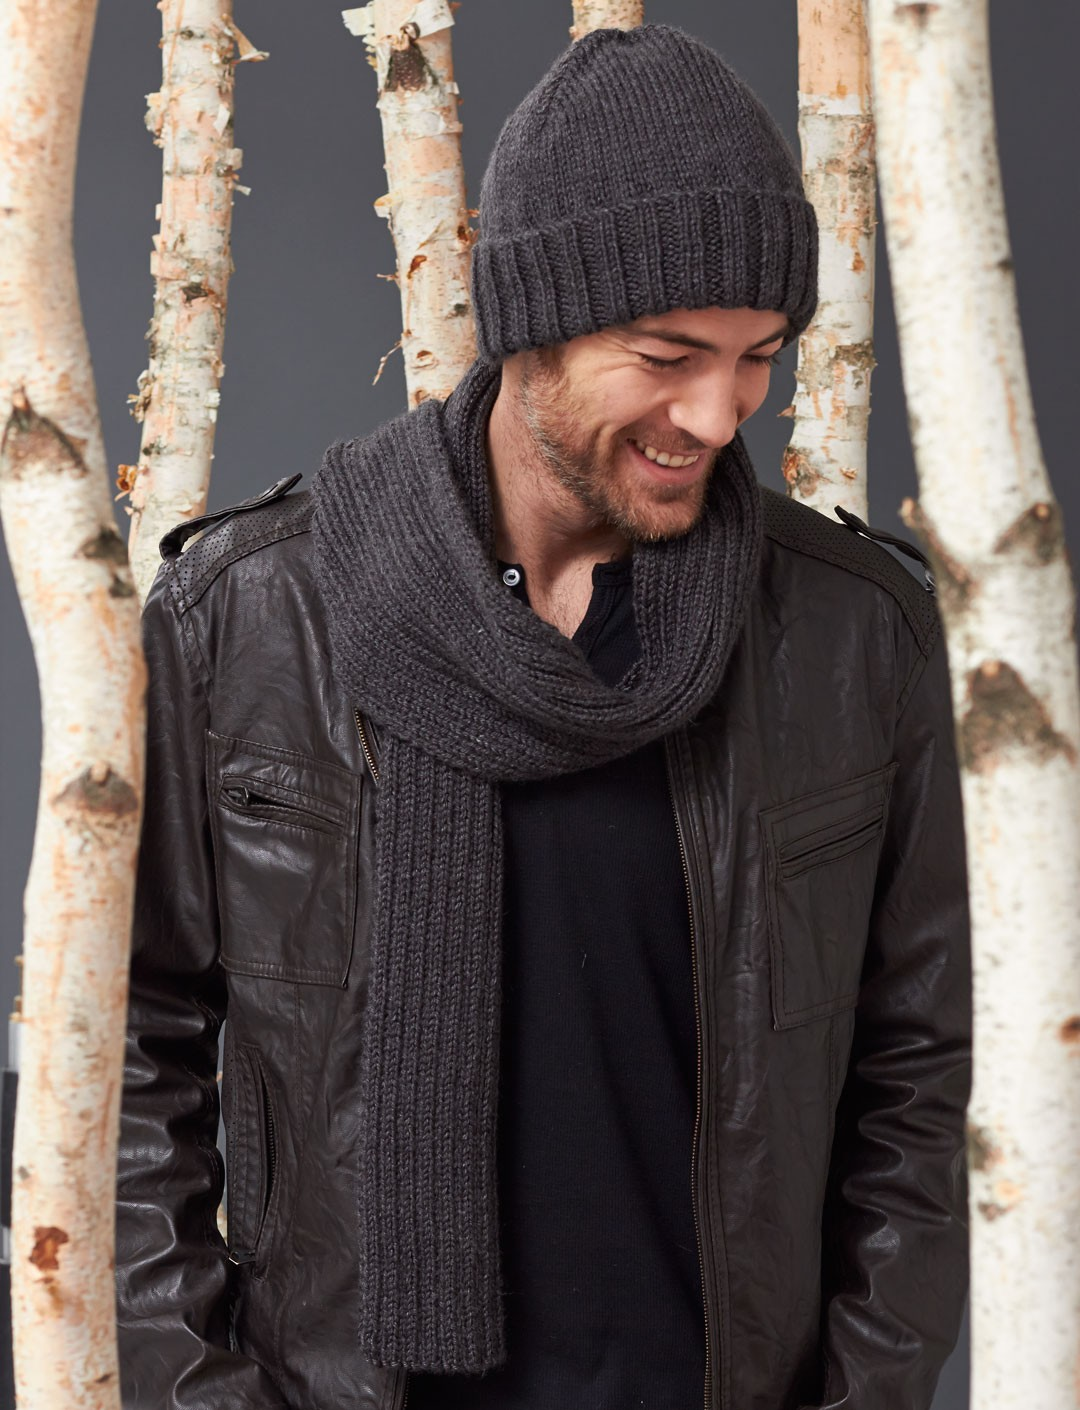 Knitting Pattern For Basic Scarf : Caron Mens Basic Hat and Scarf Set, Knit Pattern Yarnspirations